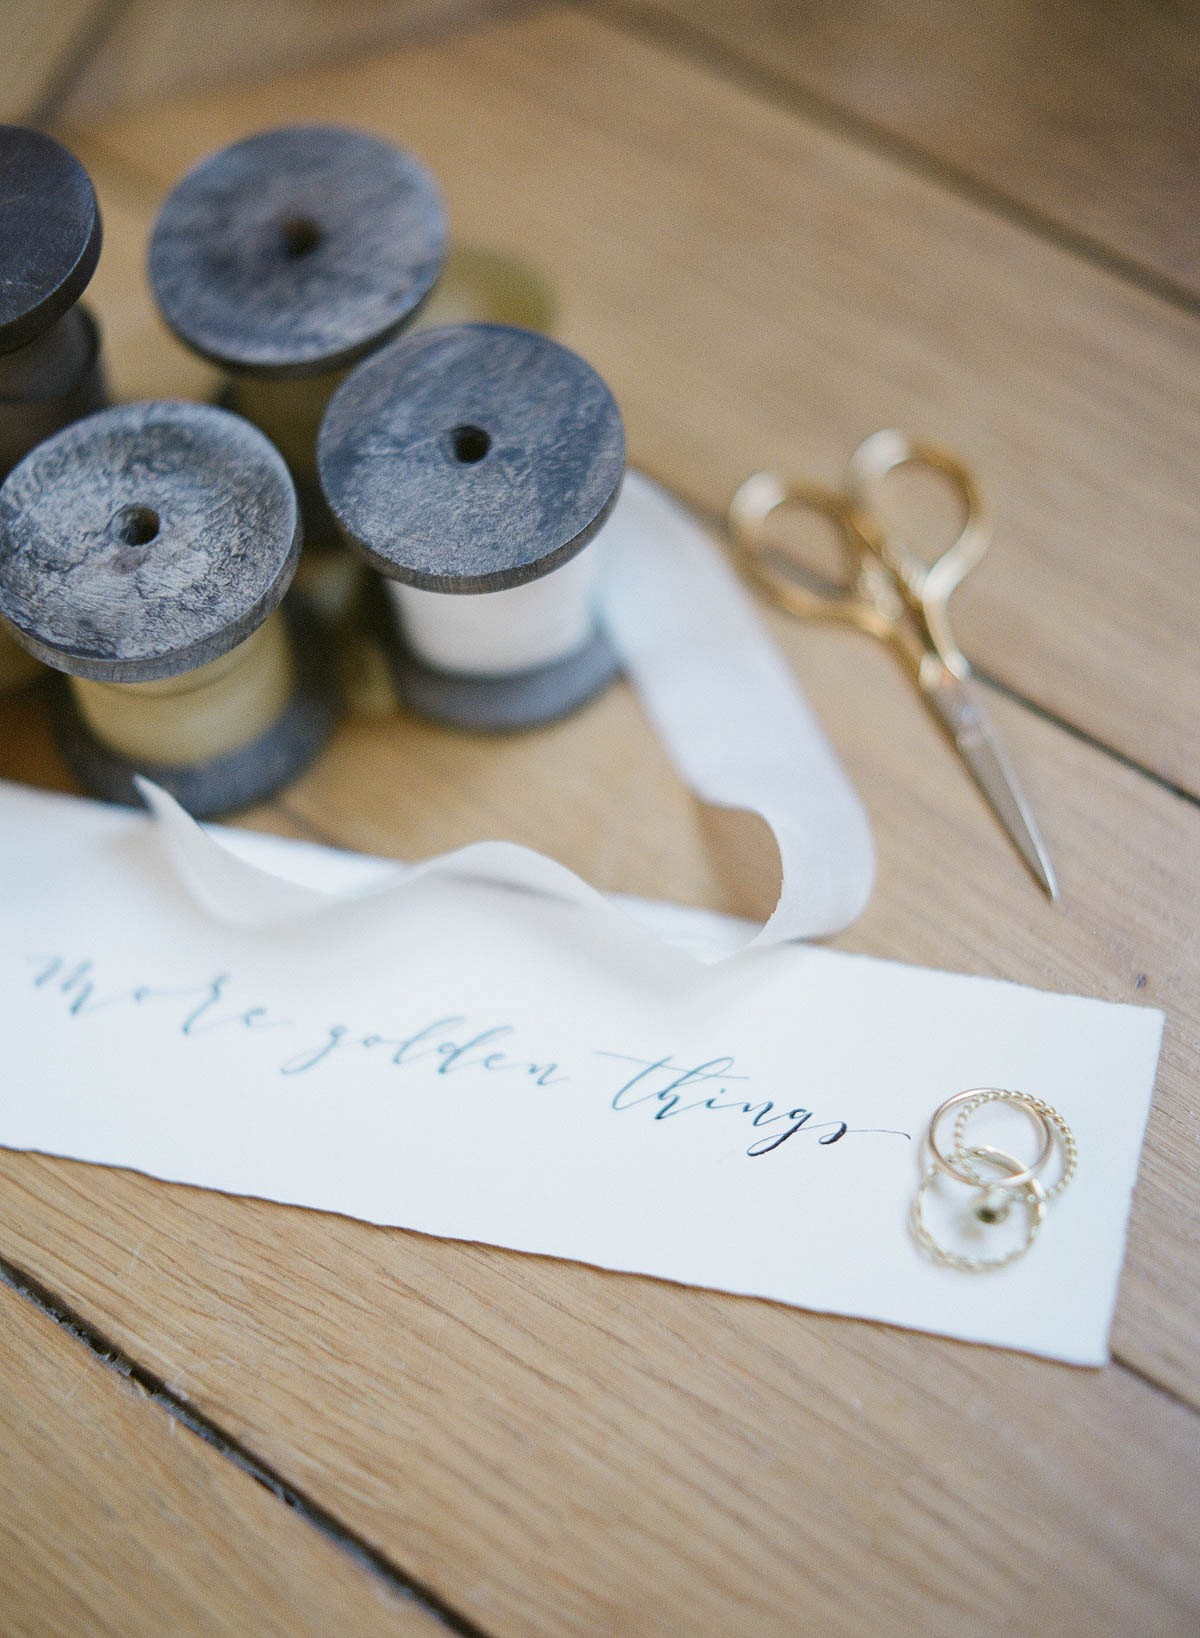 Bridal Accessories by Michaela Roemer on Wedding Sparrow